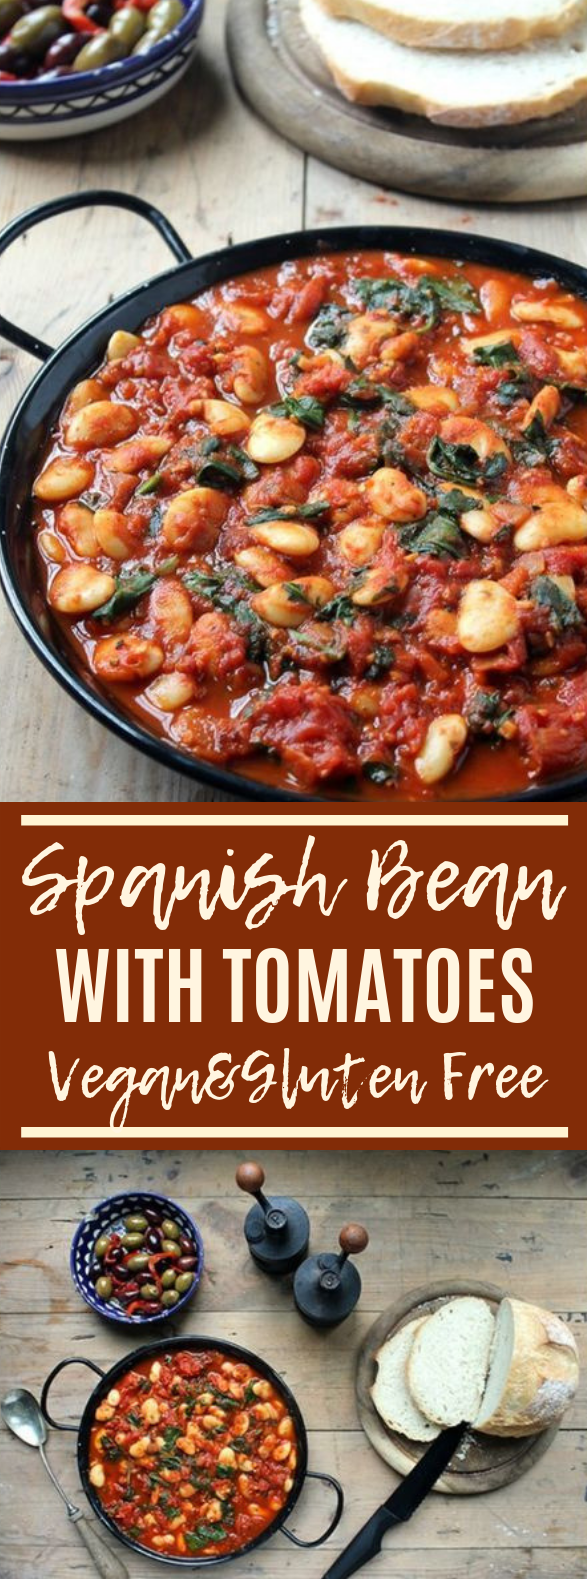 Vegan Spanish Beans with Tomatoes #comfortfood #vegetarian